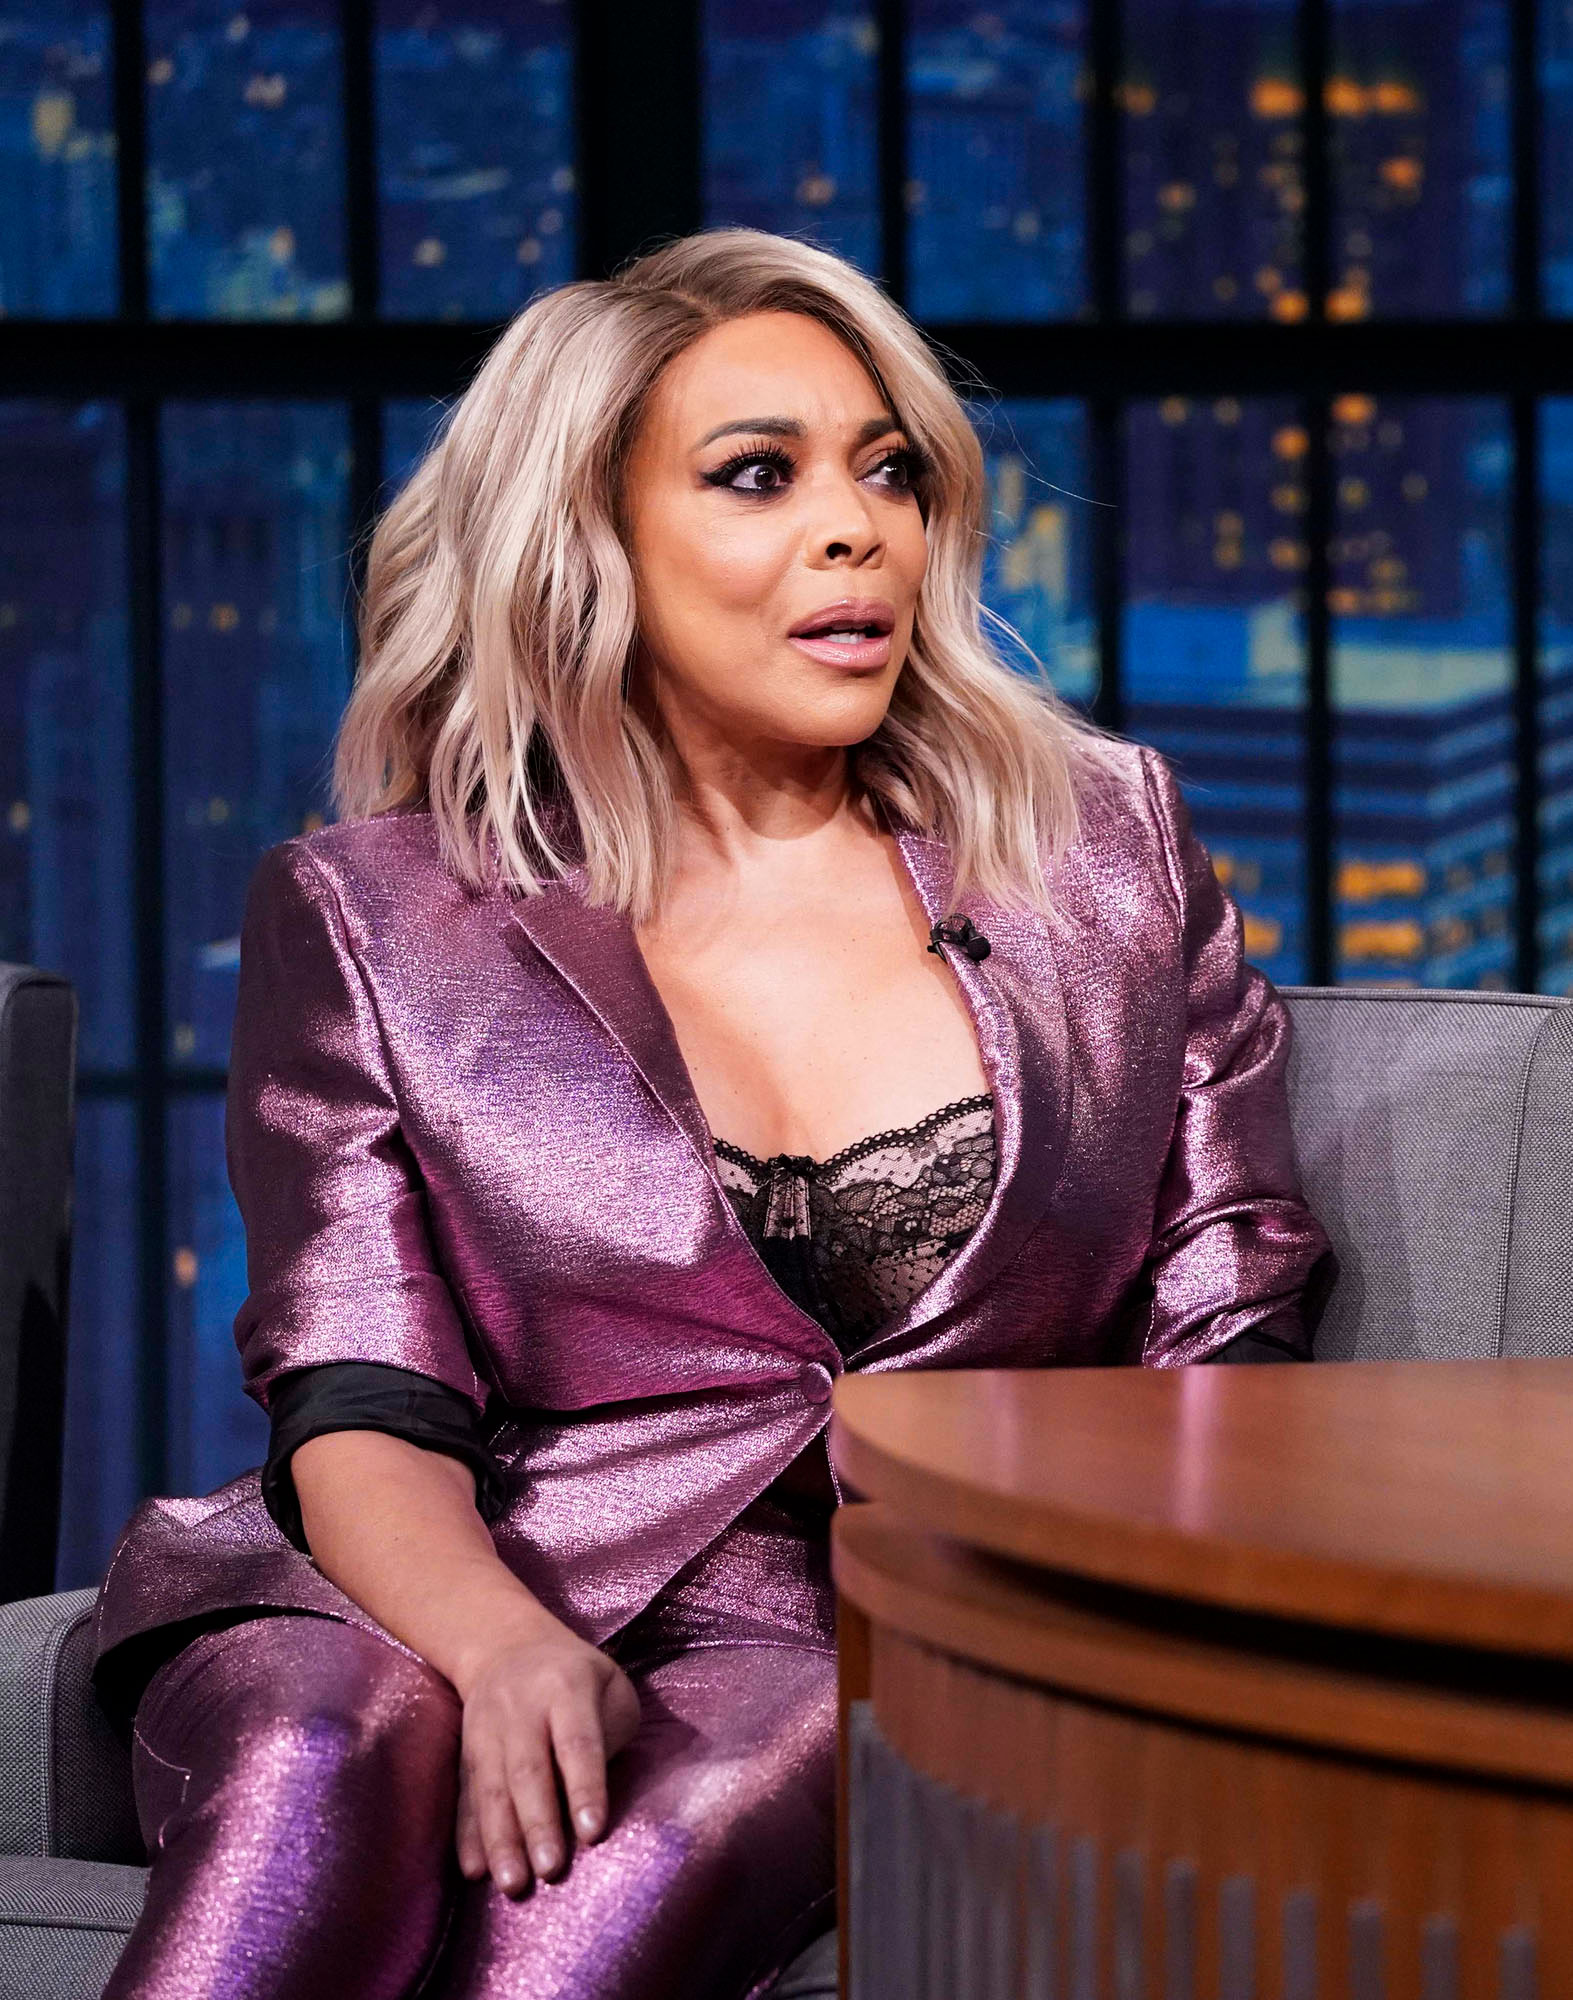 wendy williams purple suit - LATE NIGHT WITH SETH MEYERS — Episode 750 — Pictured: (l-r) Talk show host, Wendy Williams, during an interview with host Seth Meyers on October 30, 2018